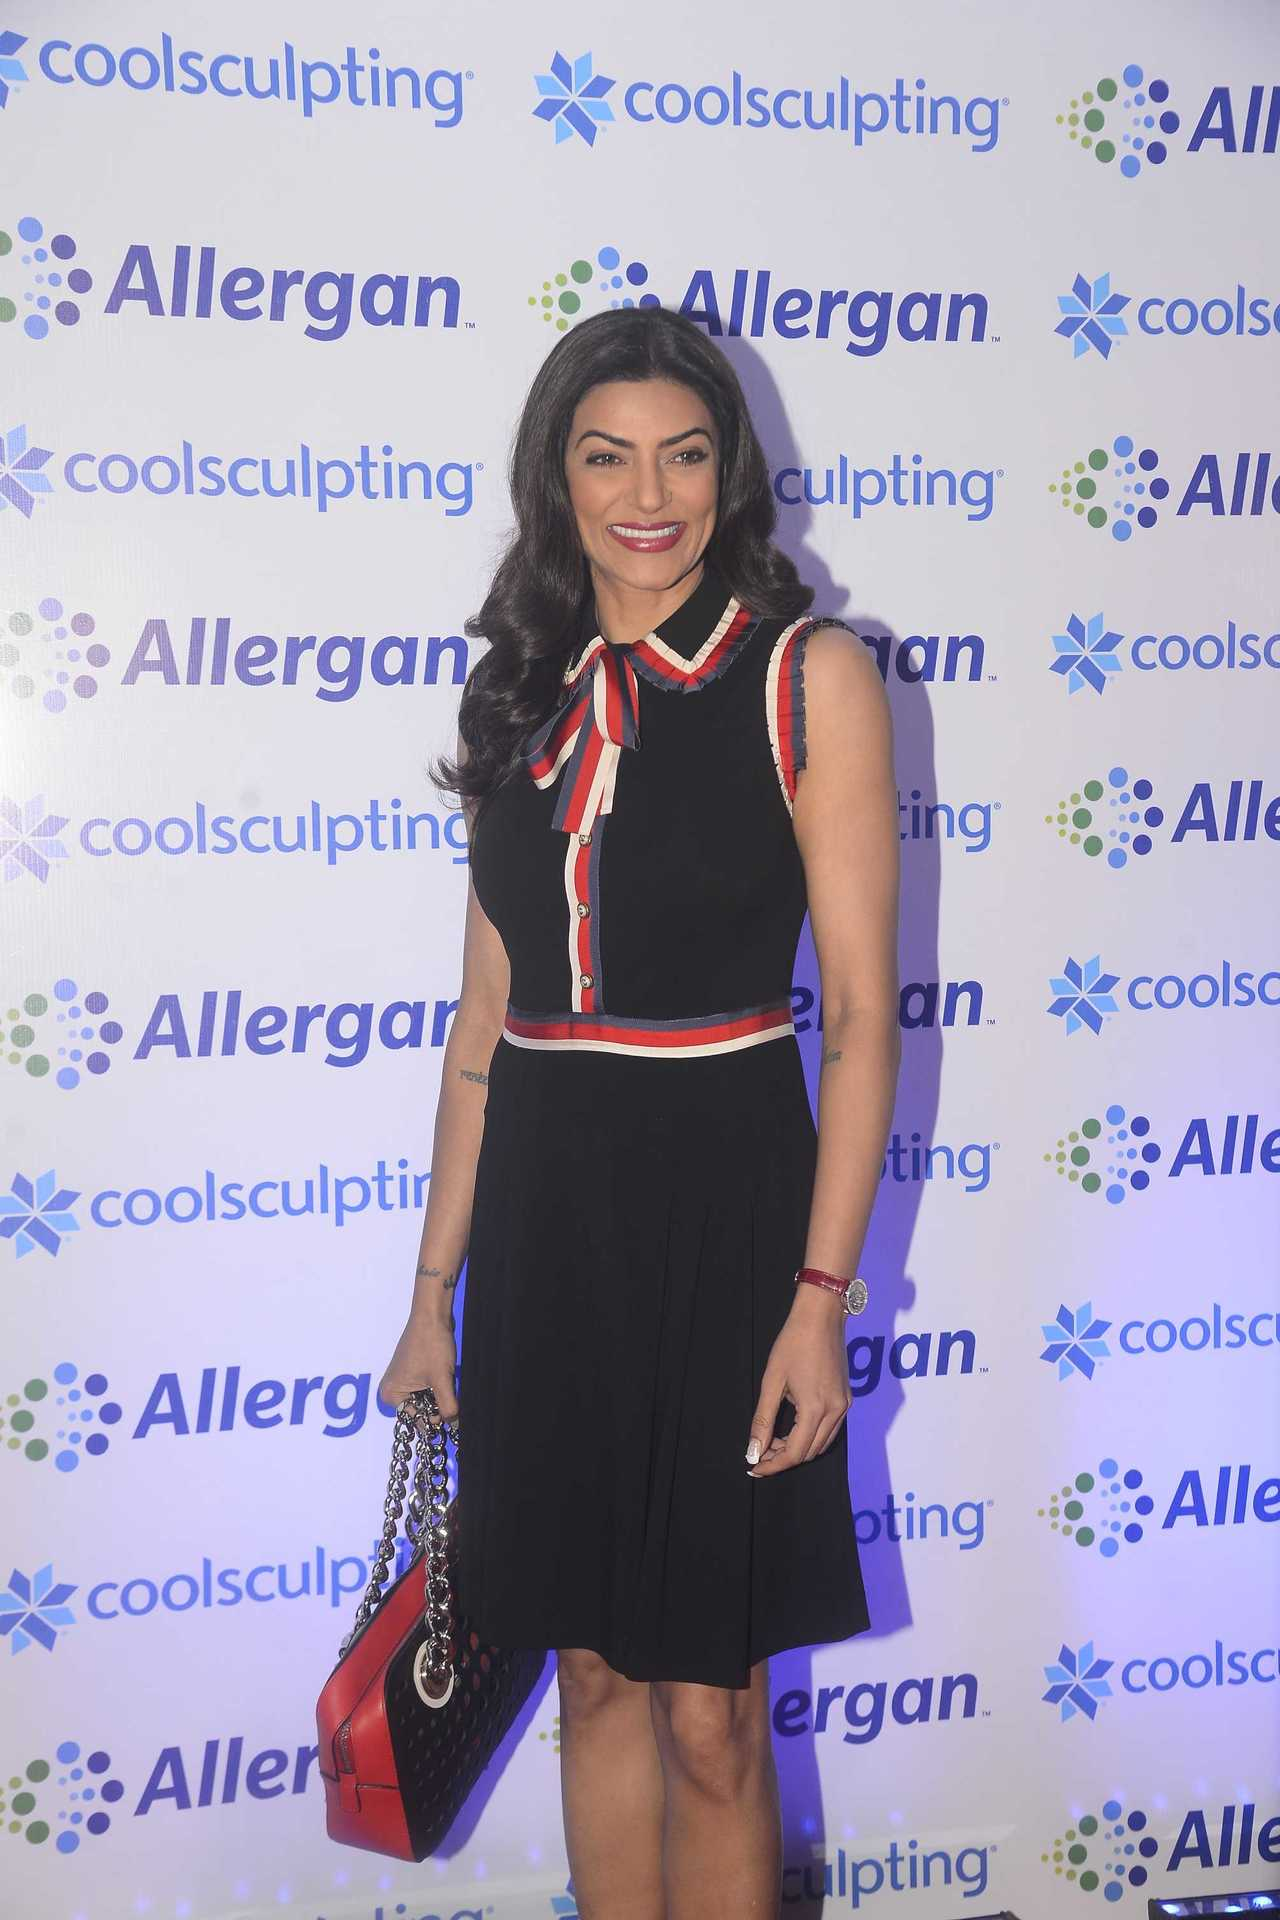 itsmonishamehta - Sushmita Sen at the CoolSculpting event in Mumbai